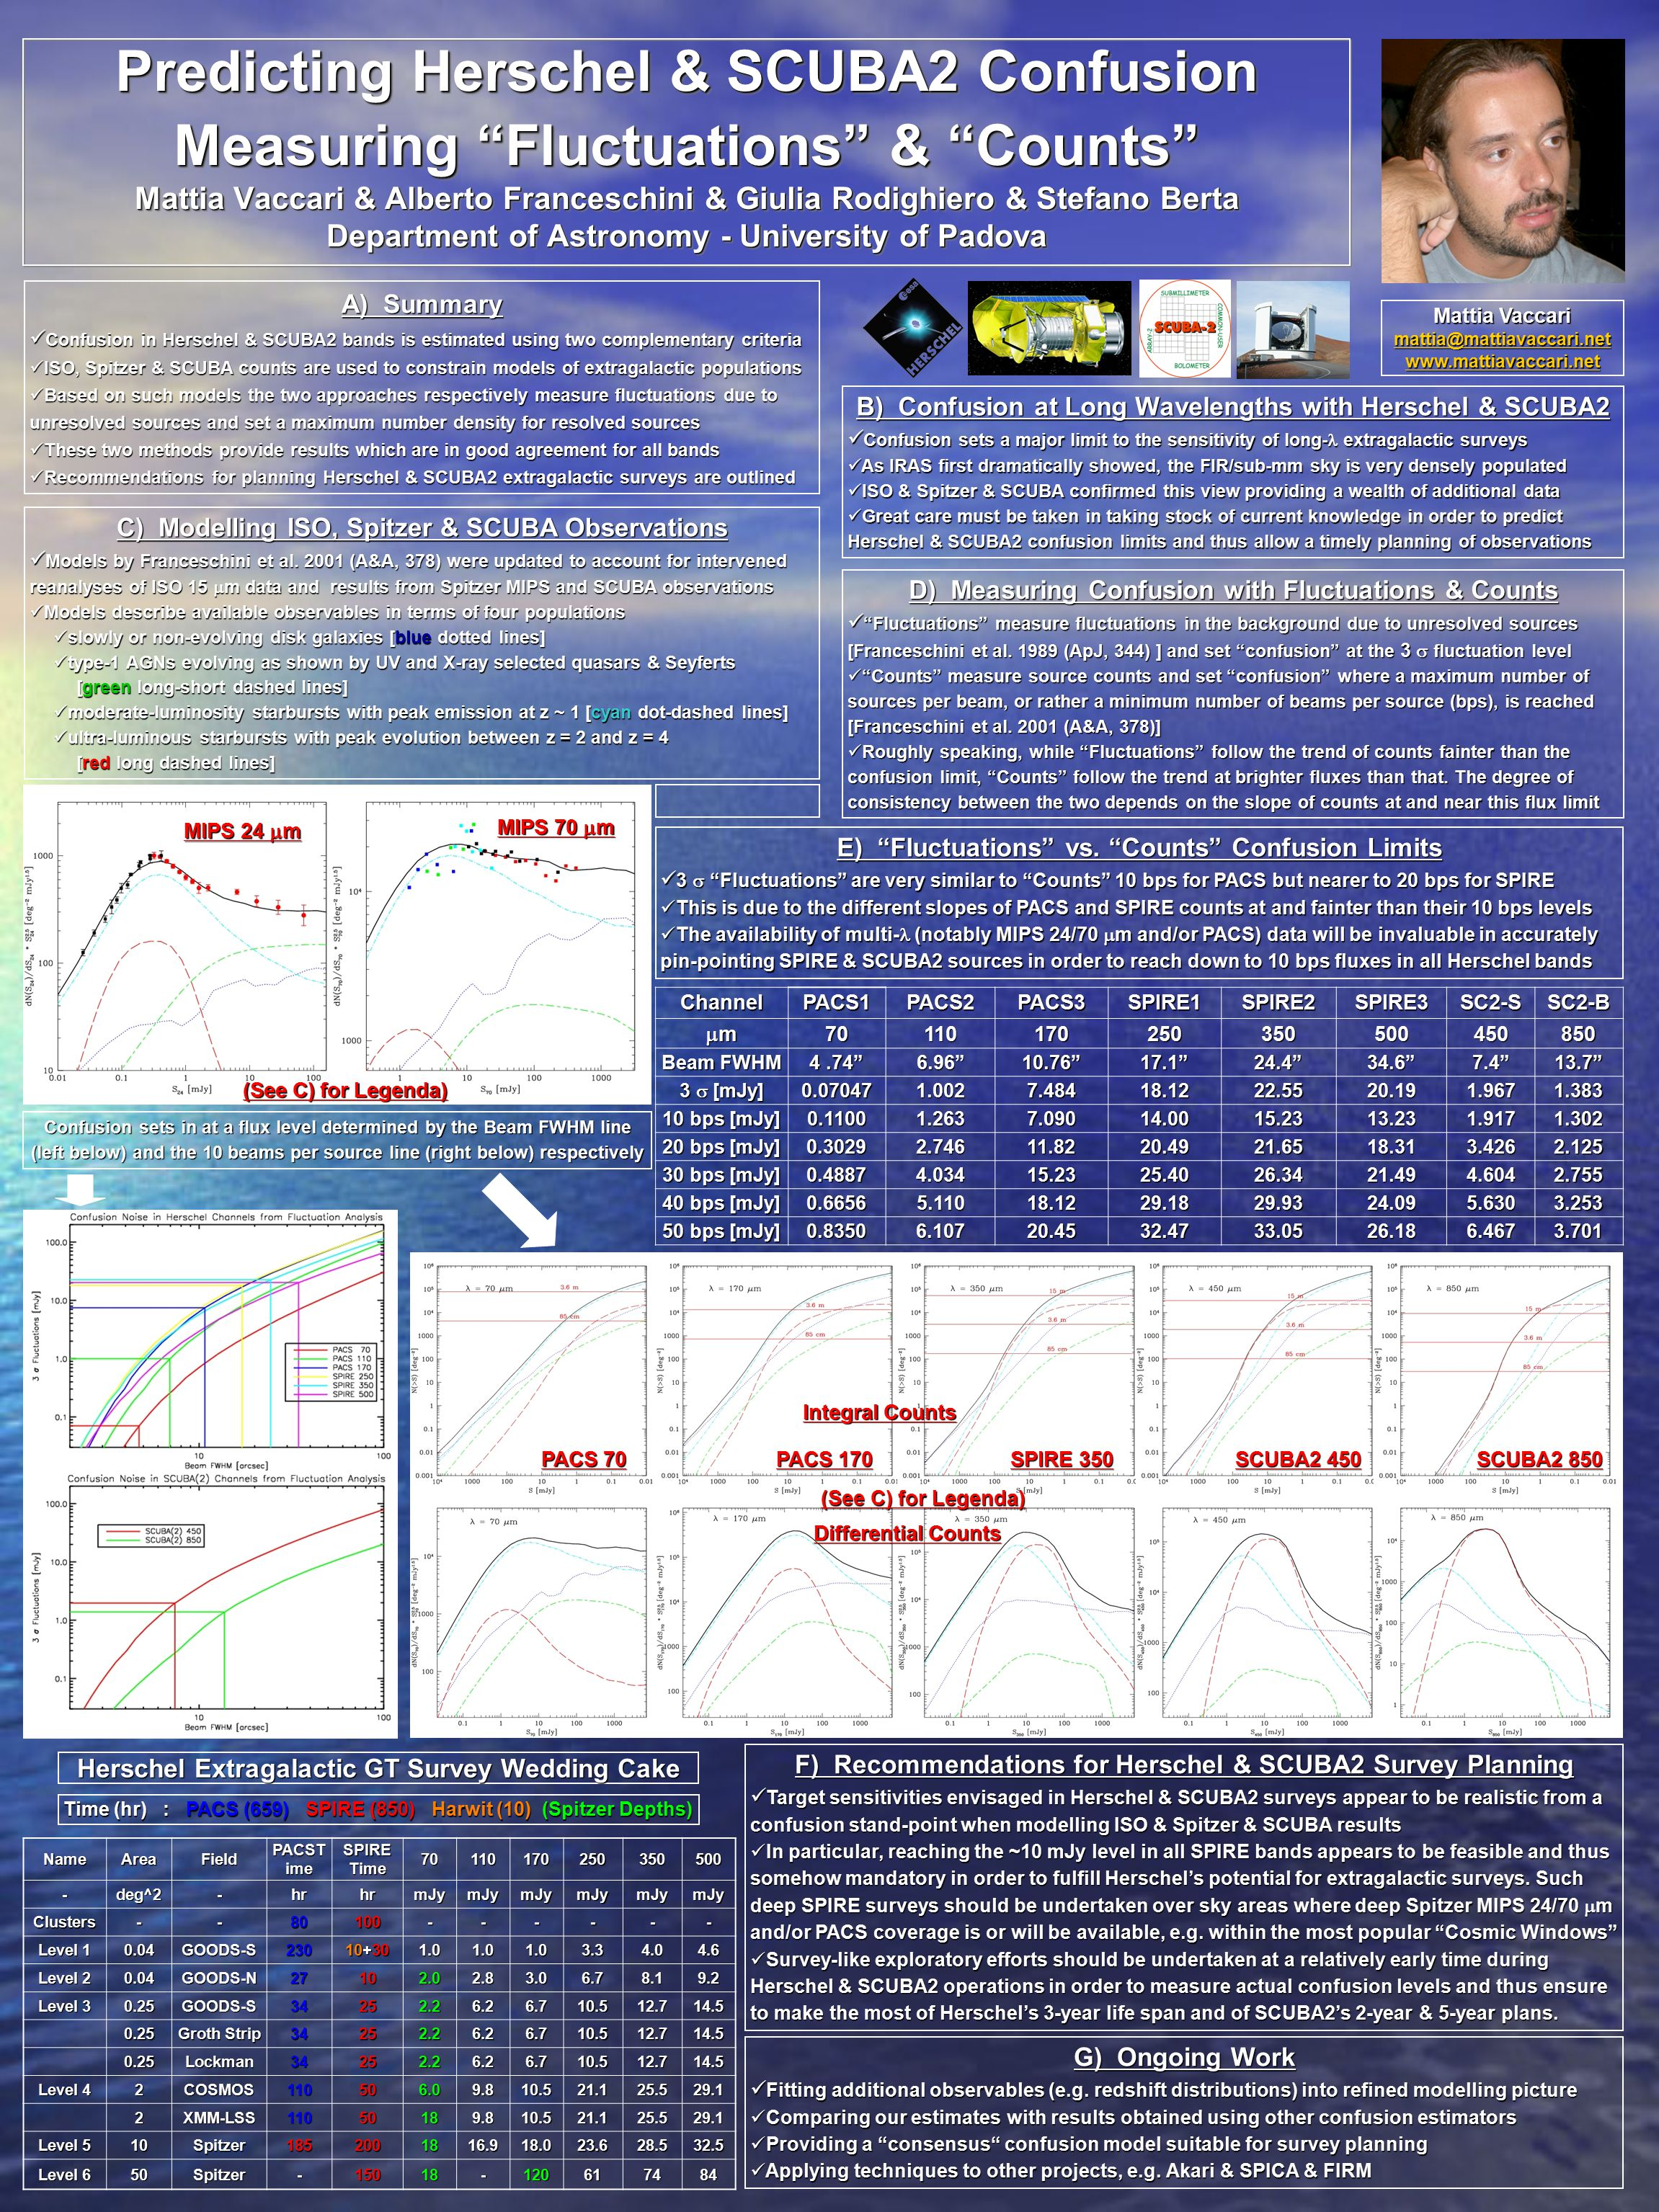 Predicting Herschel & SCUBA2 Confusion Measuring Fluctuations & Counts Mattia Vaccari & Alberto Franceschini & Giulia Rodighiero & Stefano Berta Department of Astronomy - University of Padova A) Summary Confusion in Herschel & SCUBA2 bands is estimated using two complementary criteria Confusion in Herschel & SCUBA2 bands is estimated using two complementary criteria ISO, Spitzer & SCUBA counts are used to constrain models of extragalactic populations ISO, Spitzer & SCUBA counts are used to constrain models of extragalactic populations Based on such models the two approaches respectively measure fluctuations due to unresolved sources and set a maximum number density for resolved sources Based on such models the two approaches respectively measure fluctuations due to unresolved sources and set a maximum number density for resolved sources These two methods provide results which are in good agreement for all bands These two methods provide results which are in good agreement for all bands Recommendations for planning Herschel & SCUBA2 extragalactic surveys are outlined Recommendations for planning Herschel & SCUBA2 extragalactic surveys are outlined Mattia Vaccari mattia@mattiavaccari.net www.mattiavaccari.net E) Fluctuations vs.